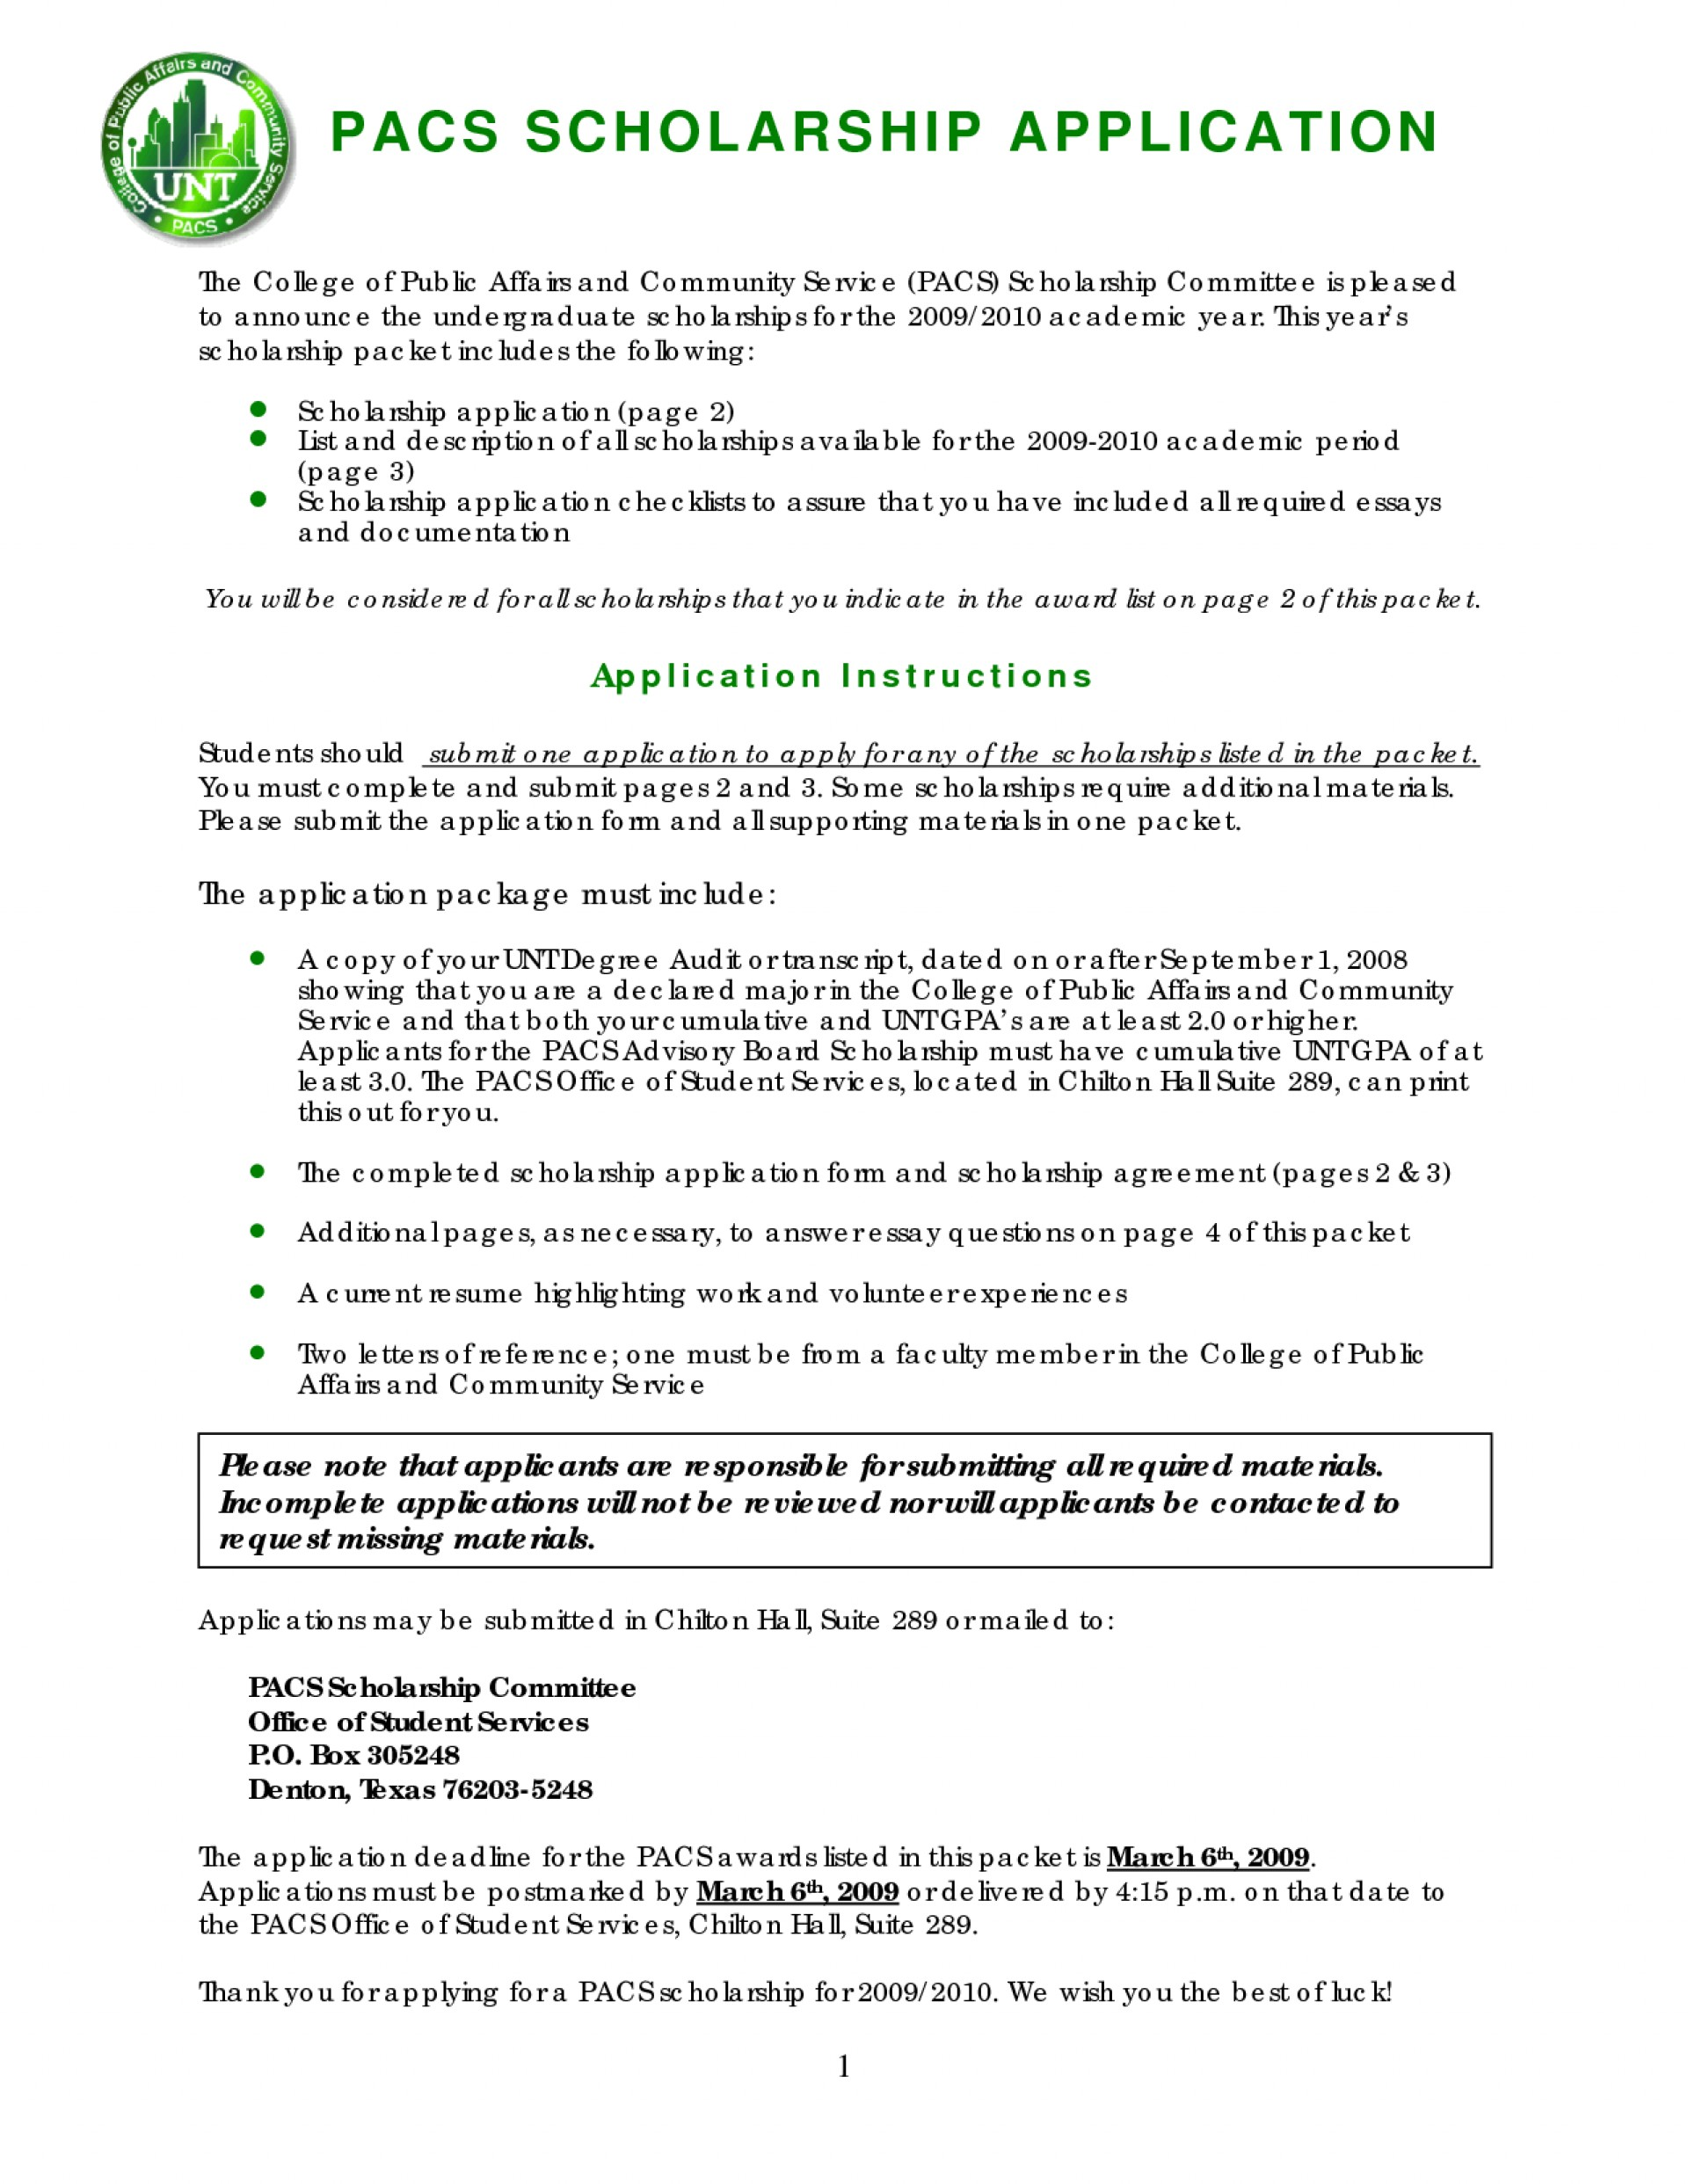 010 Scholarship Essay Prompts Example Writing An For Personal Examples Unique Questions 11exu Rbc Gates And Answers Chevening Psc Leadership Magnificent Robertson 2018-19 Vanderbilt Washington Lee Johnson 1920